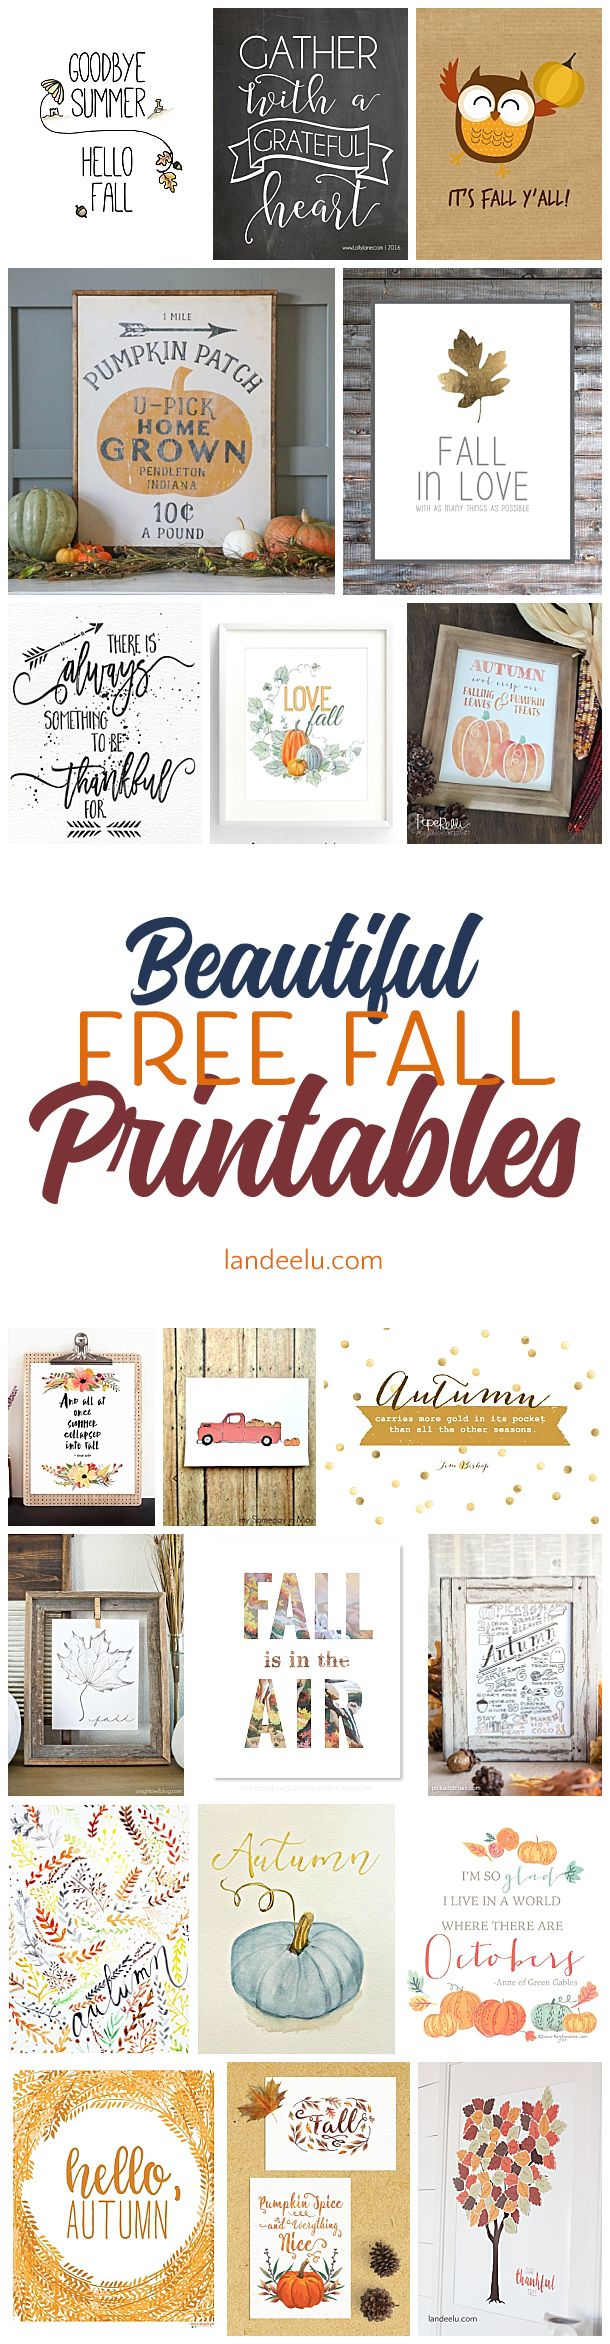 20 Free Fall Printables For Your Home   Fall decor, Cricut and ...